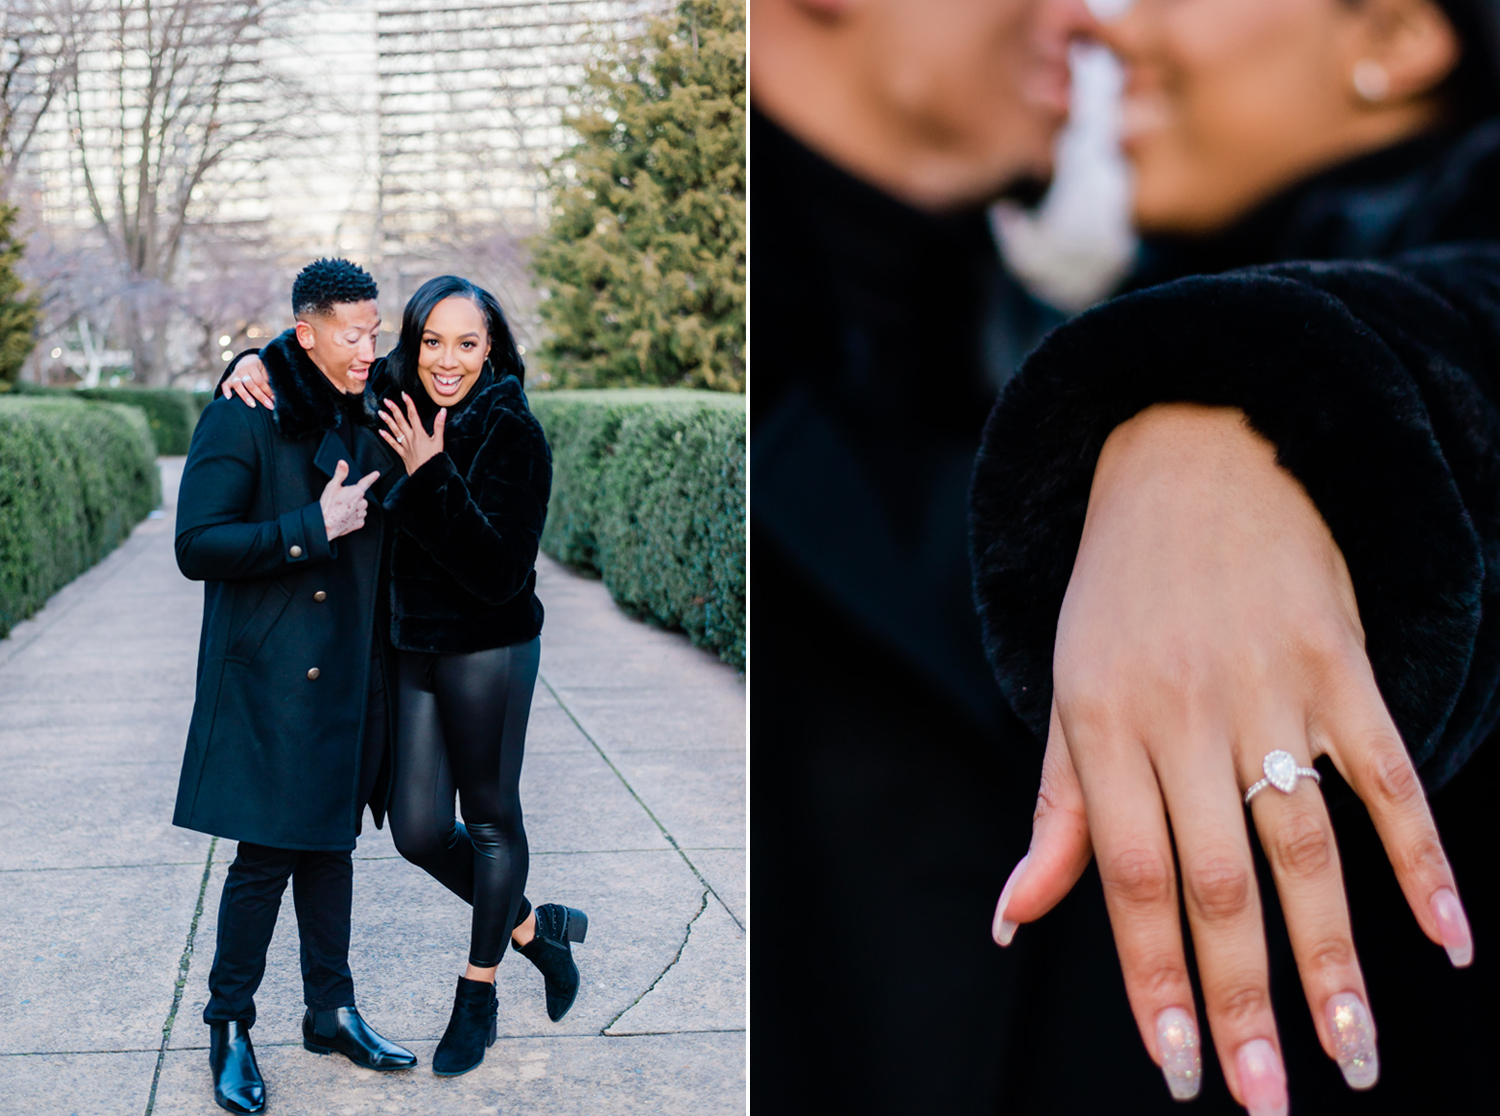 Black woman shows off engagement ring. Black man on left admires and points to her ring. On right side, couple is snuggling noses while Black woman has ring towards camera. By Tonjanika Smith Photography